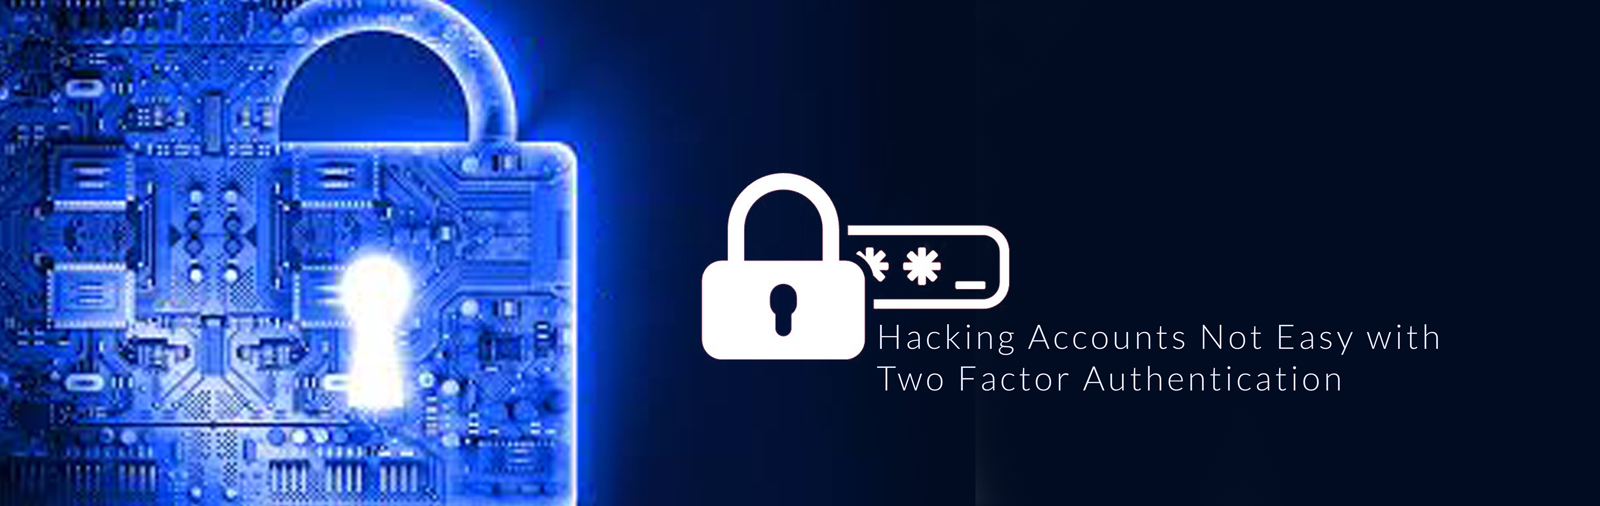 Hacking Accounts Not Easy with Two Factor Authentication